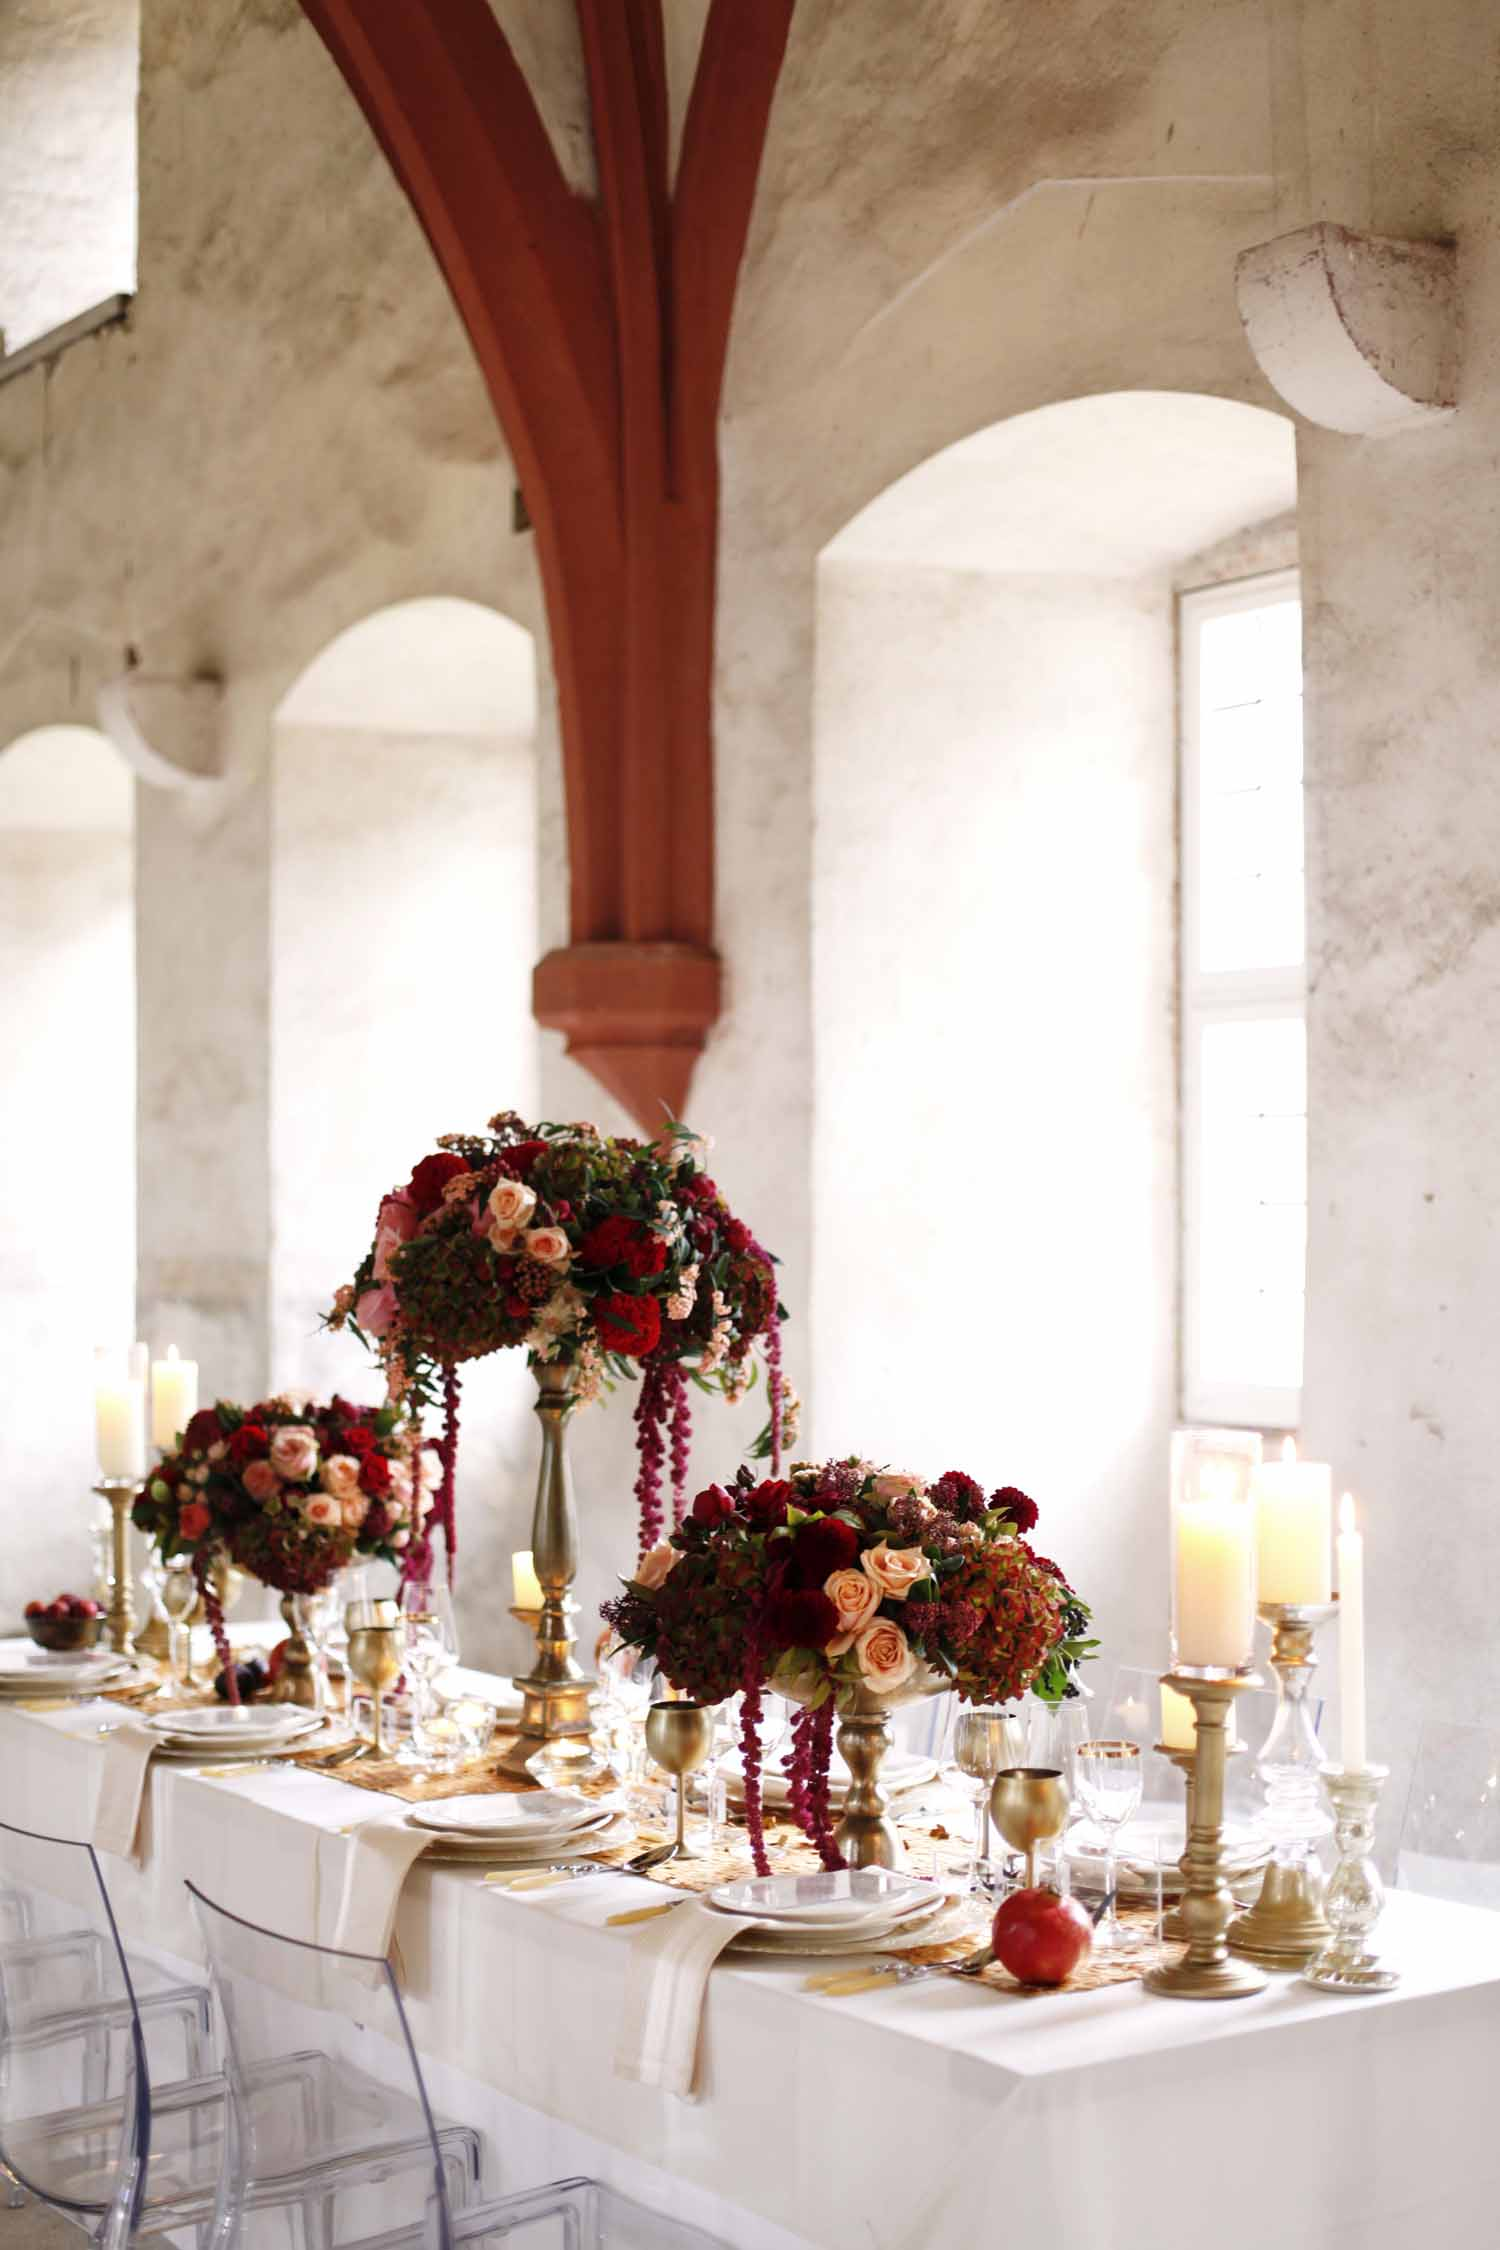 wedding in Kloster Eberbach Germany by Flora Nova Design